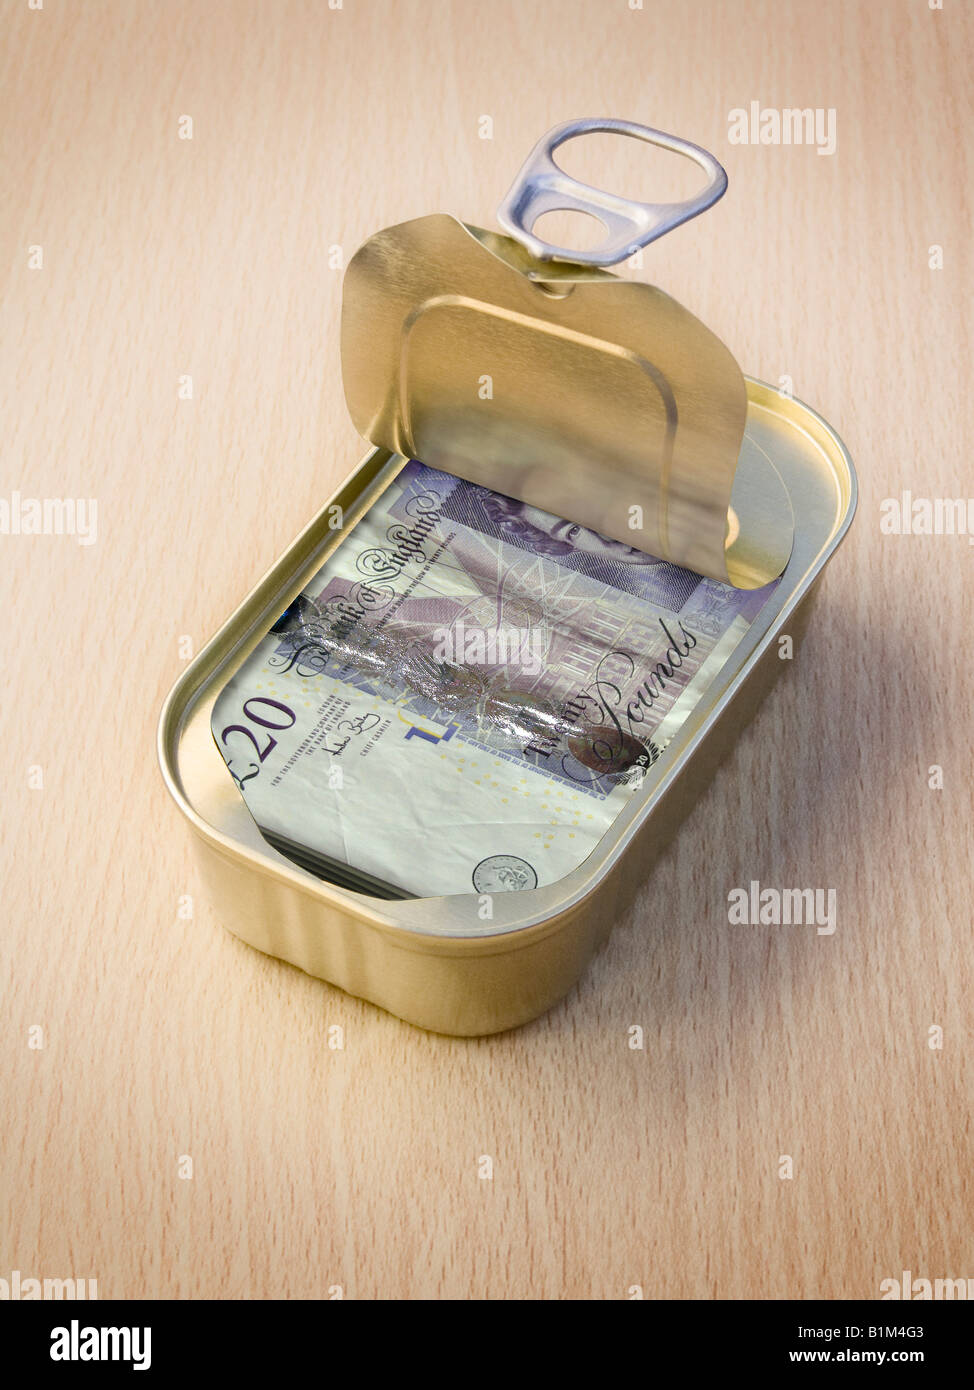 Ring Pull Tin containing £20 notes on wooden surface - Stock Image